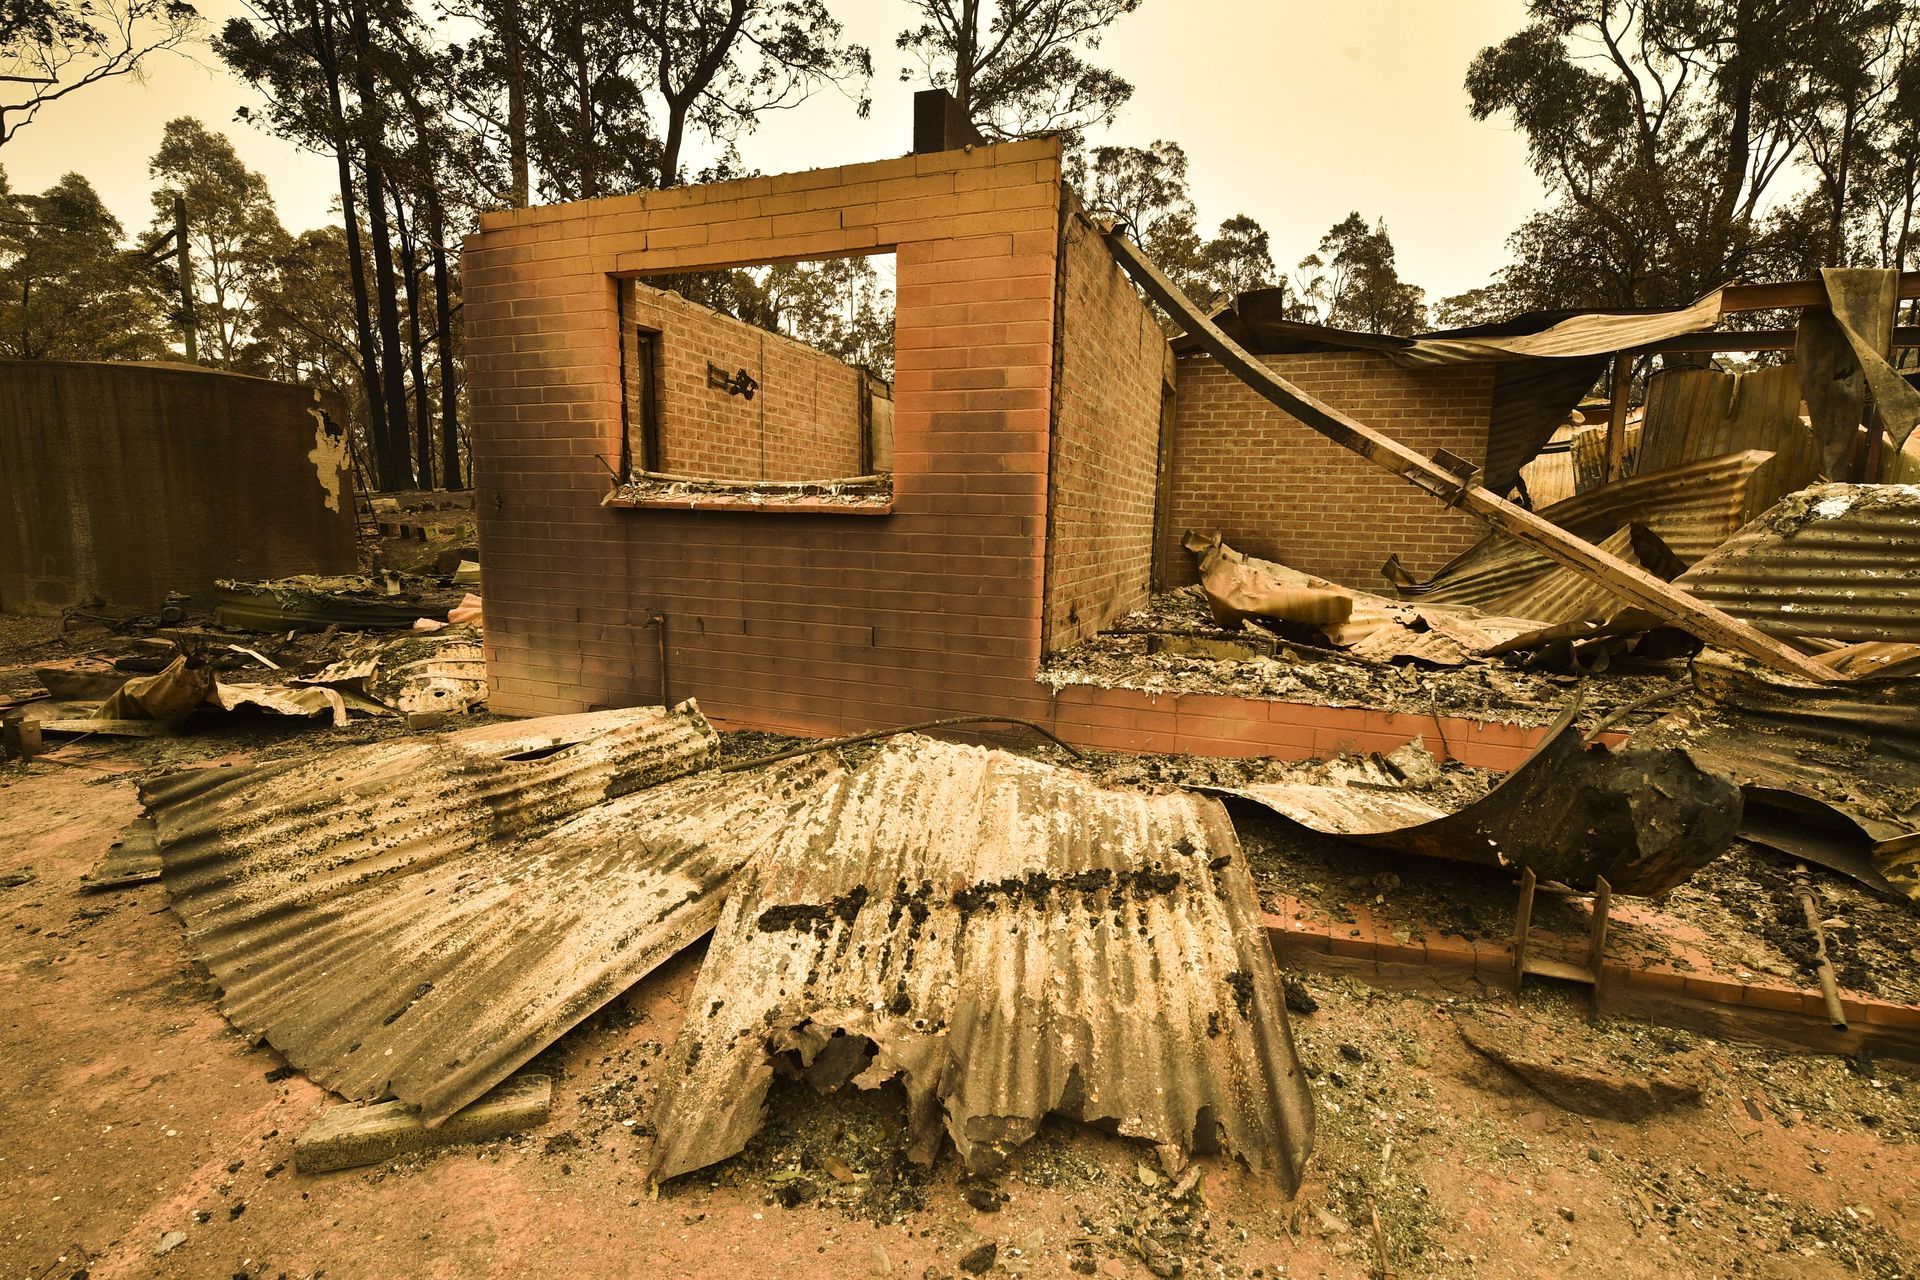 A house leveled by the fires in Australia